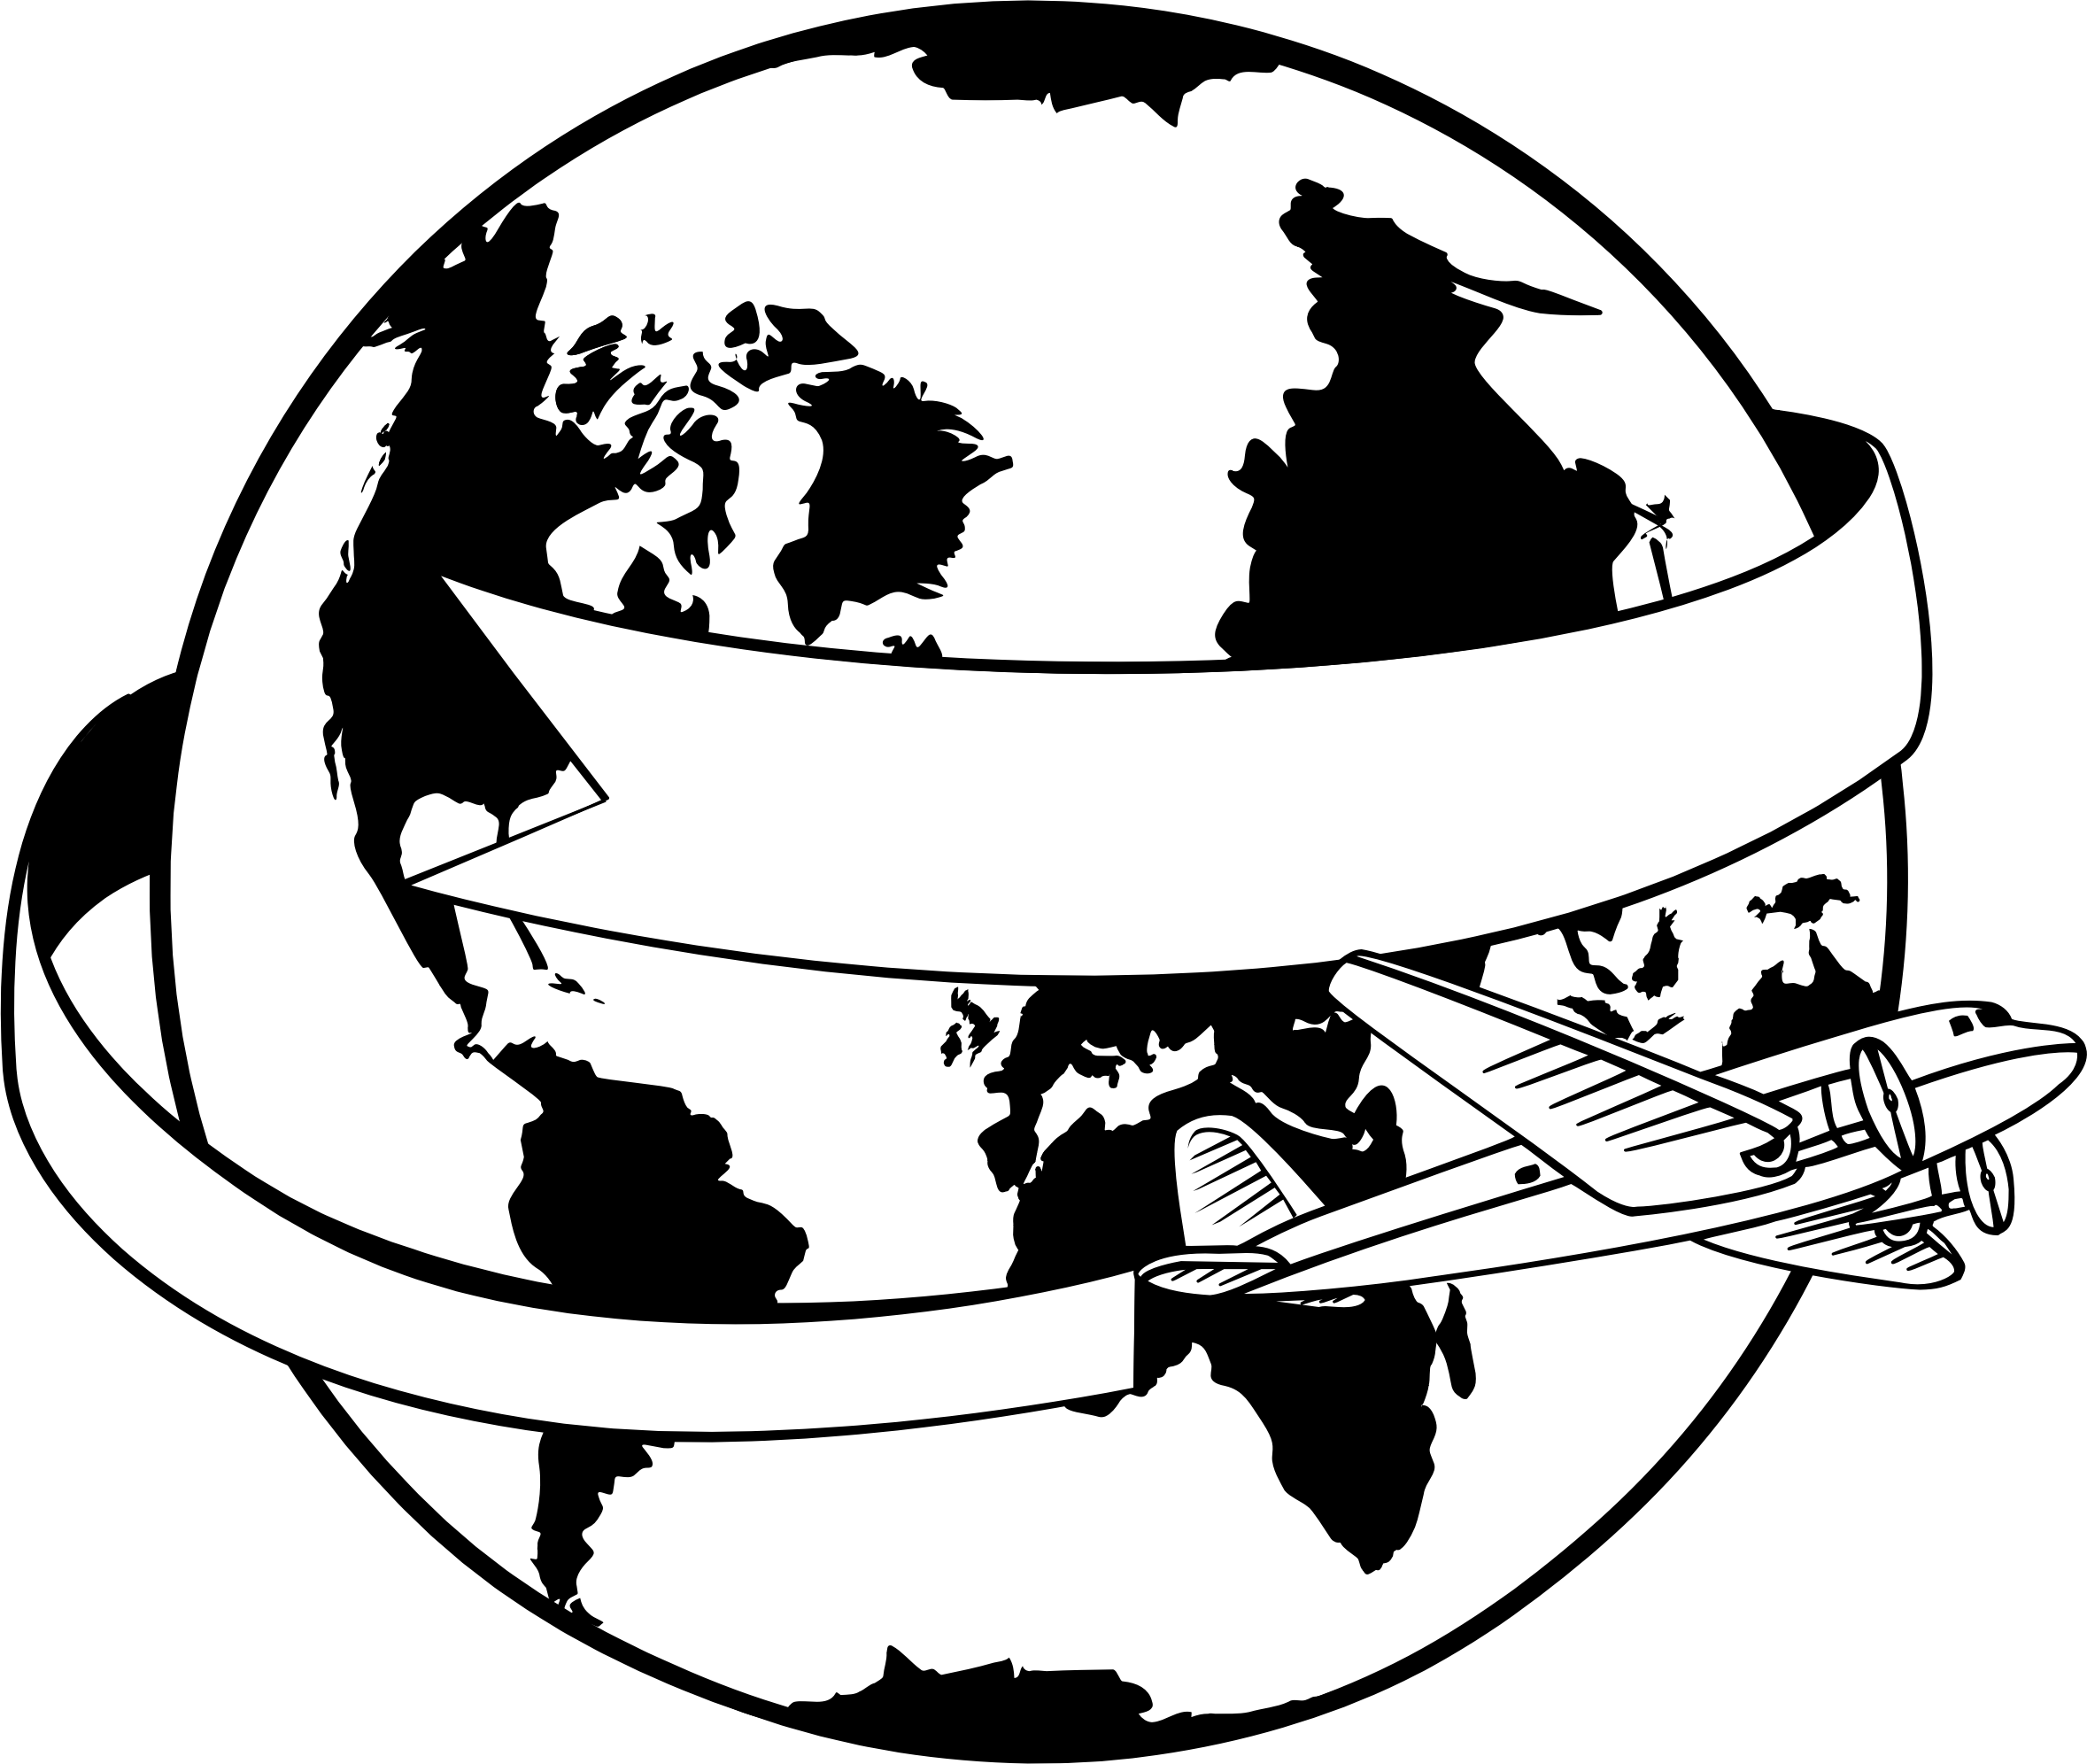 World drawing png. Earth airplane globe clip